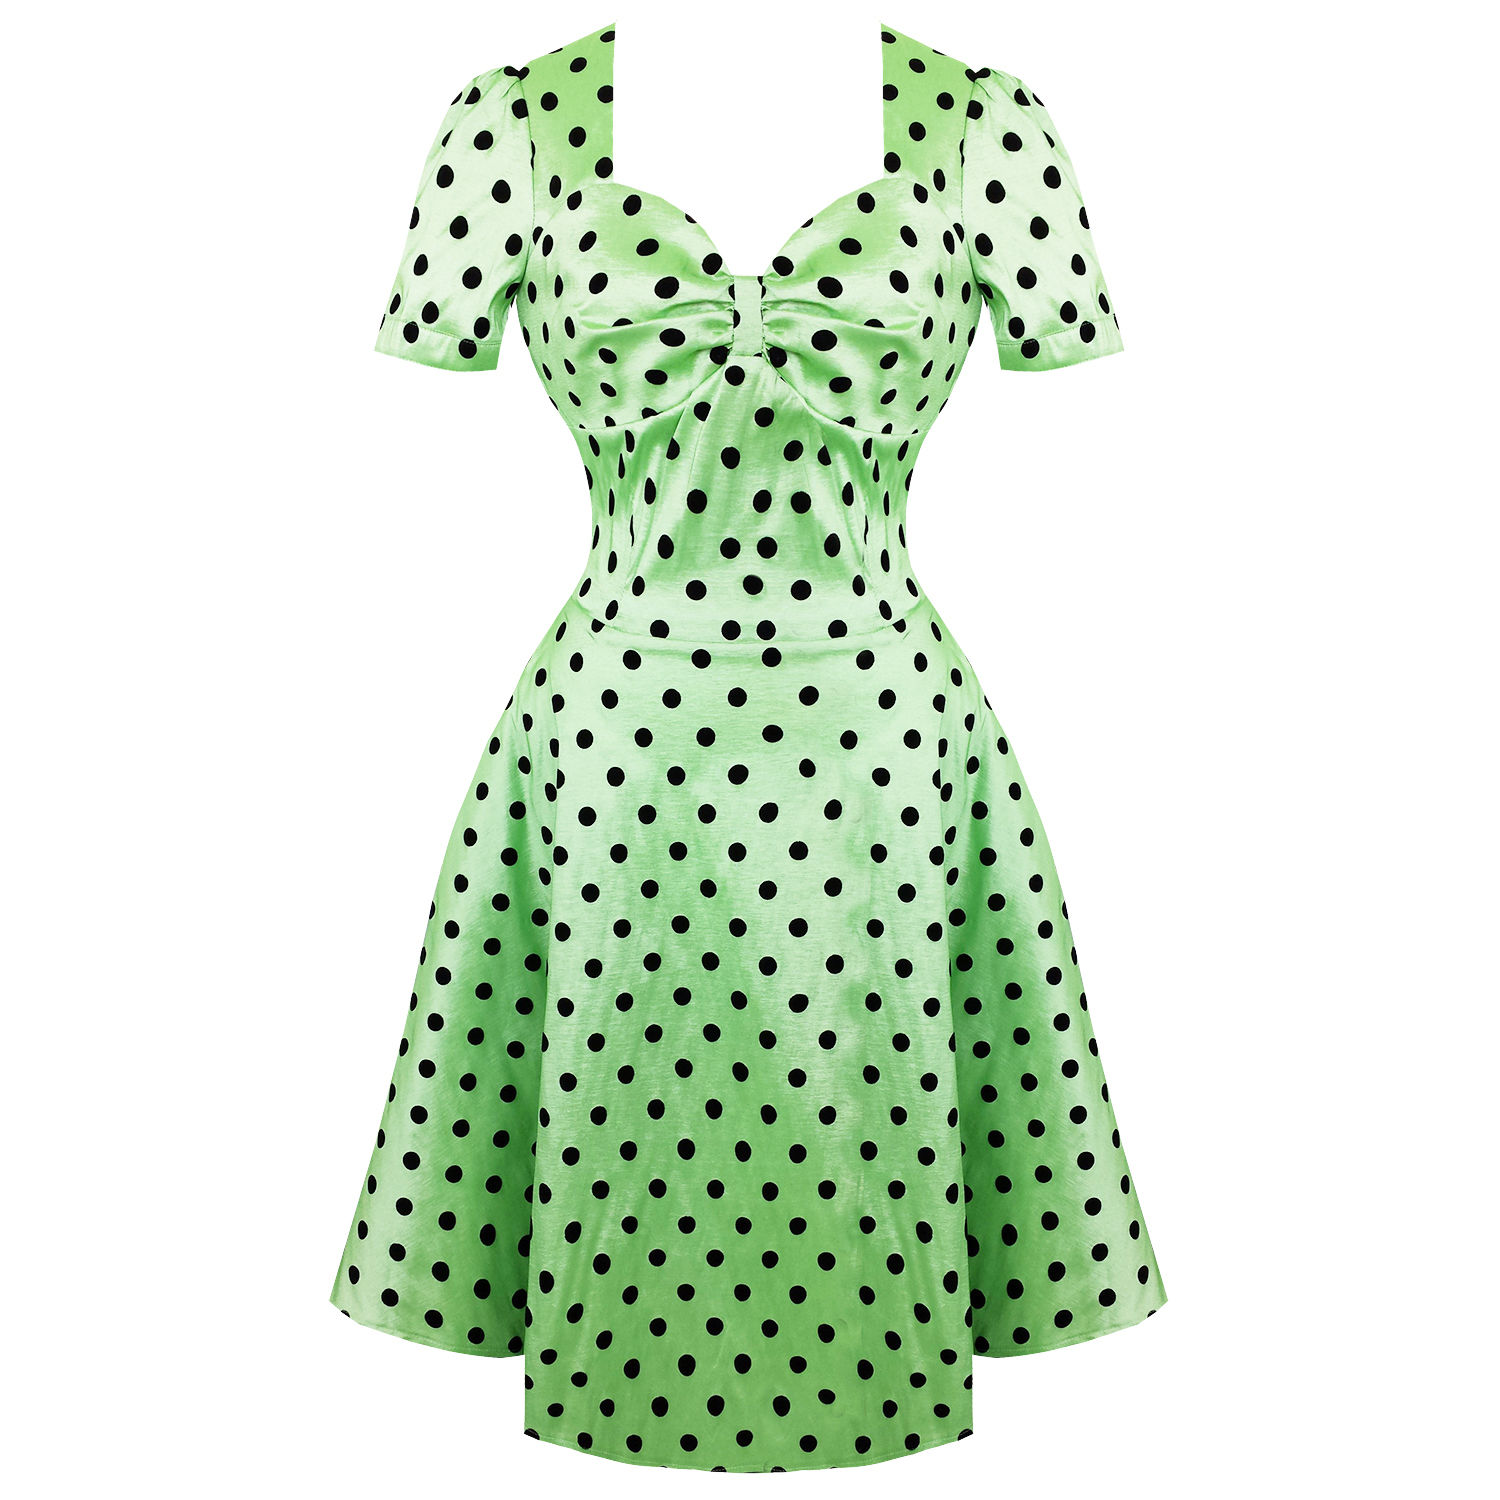 Voodoo Vixen Hanna Polka Dot Dress Without Petticoat